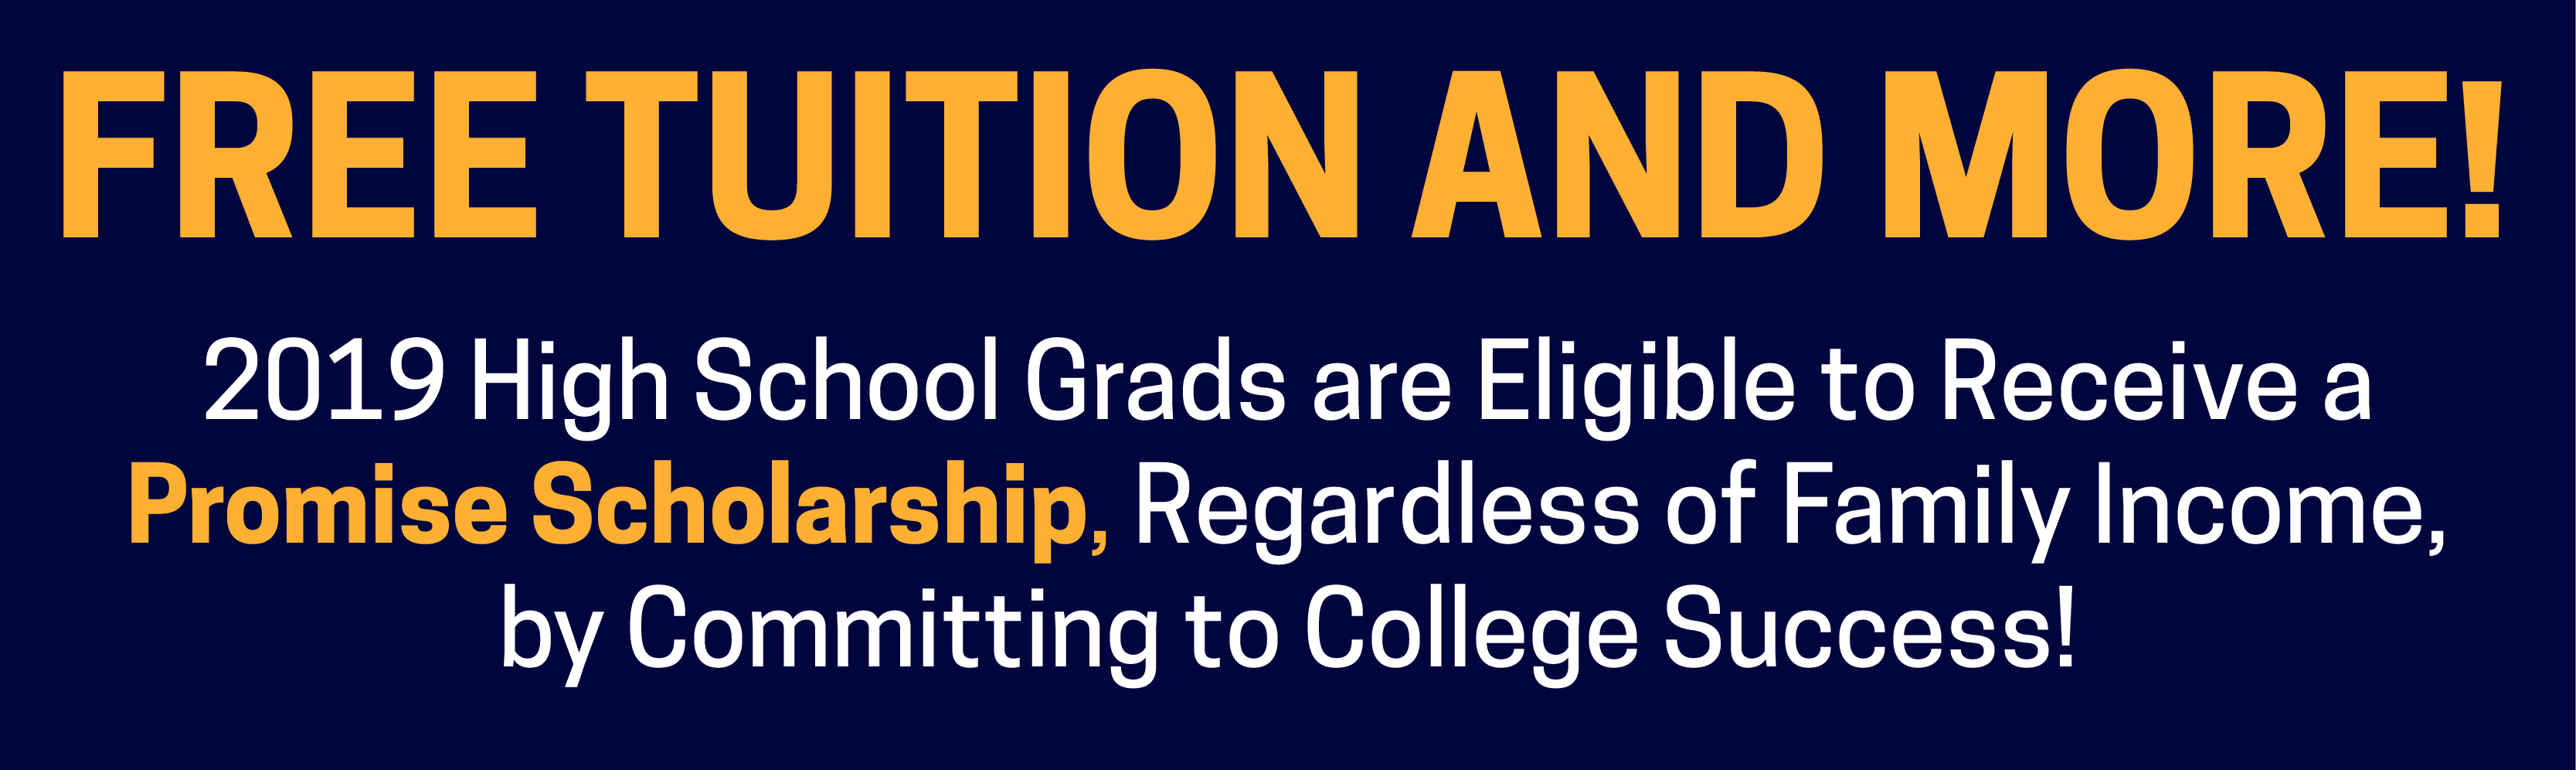 FREE TUITION AND MORE! 2019 High School Grads are Eligible to Receive a Promise Scholarship, Regardless of Family Income, by Com